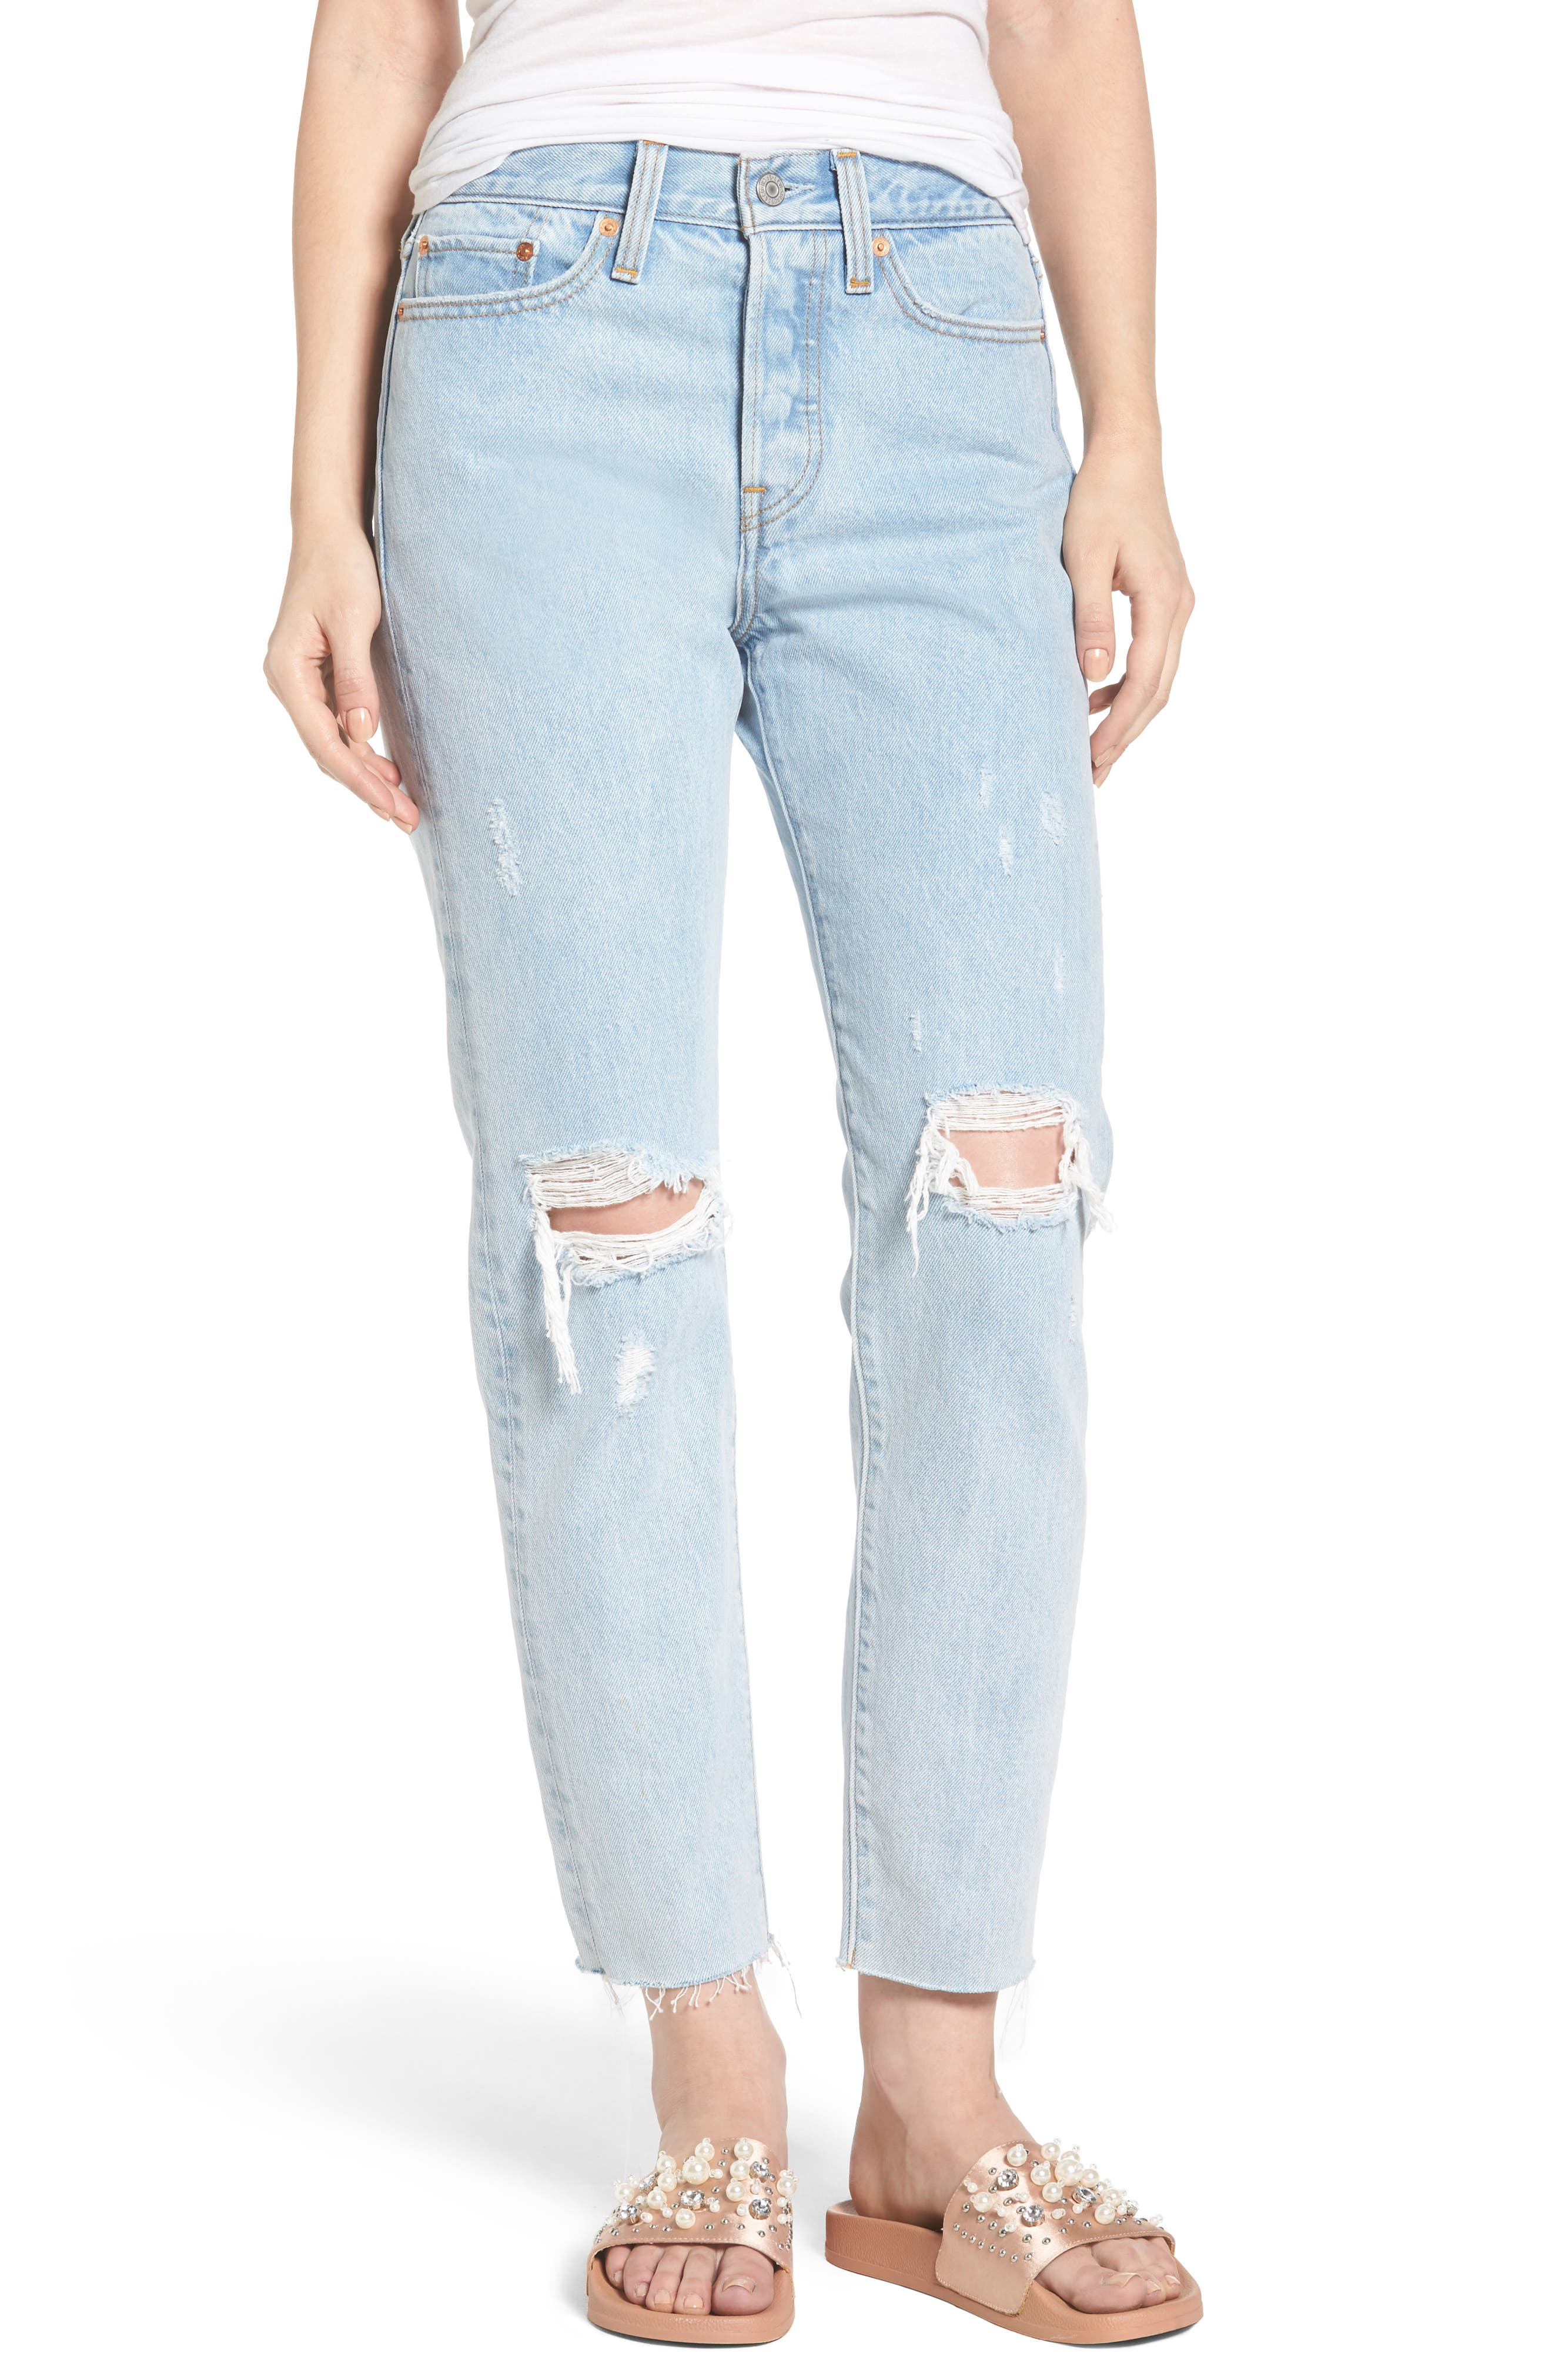 Alternate Image 1 Selected - Levi's® Wedgie High Waist Crop Jeans (Kiss Off)